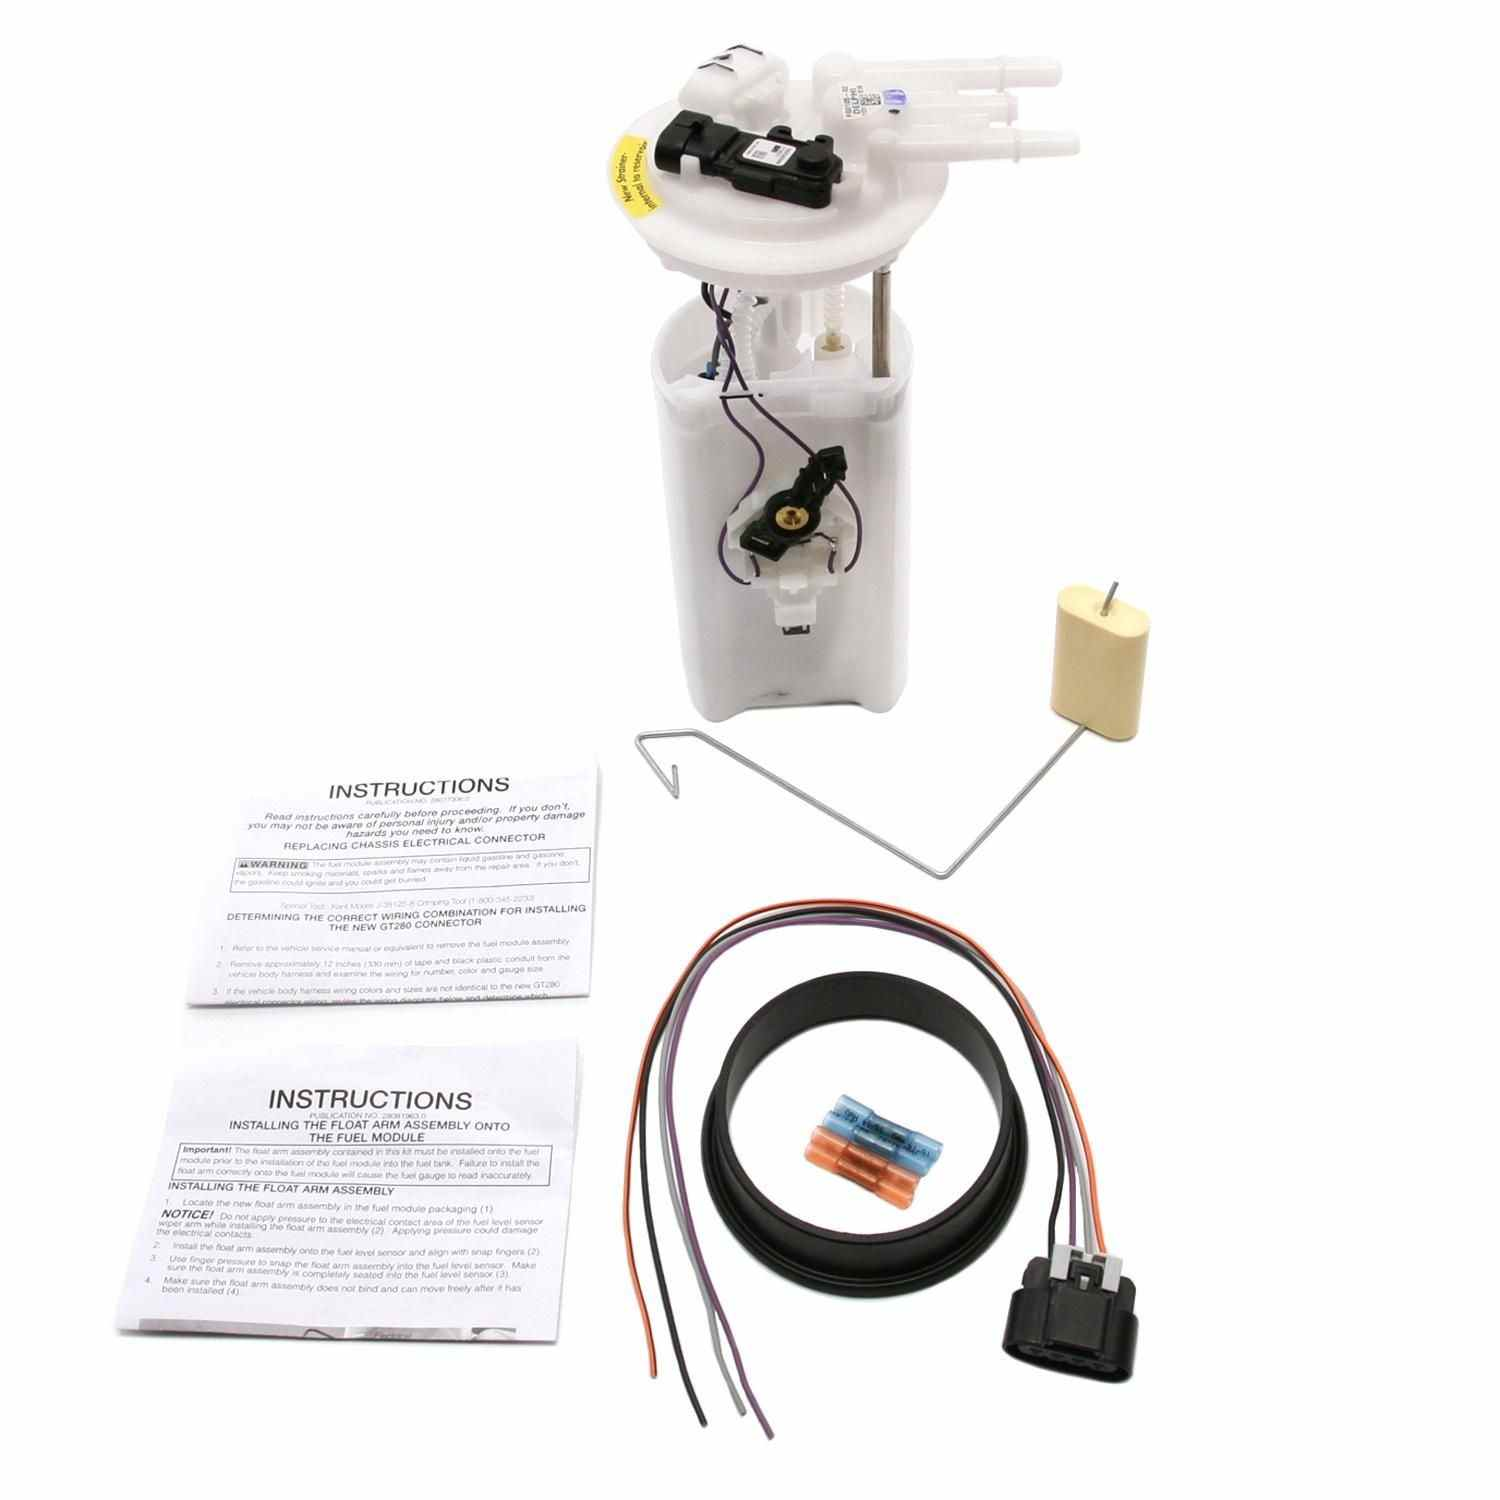 Magneti Marelli Offered By Mopar Fuel Pump Module Assembly Part Electric Installation Instructions